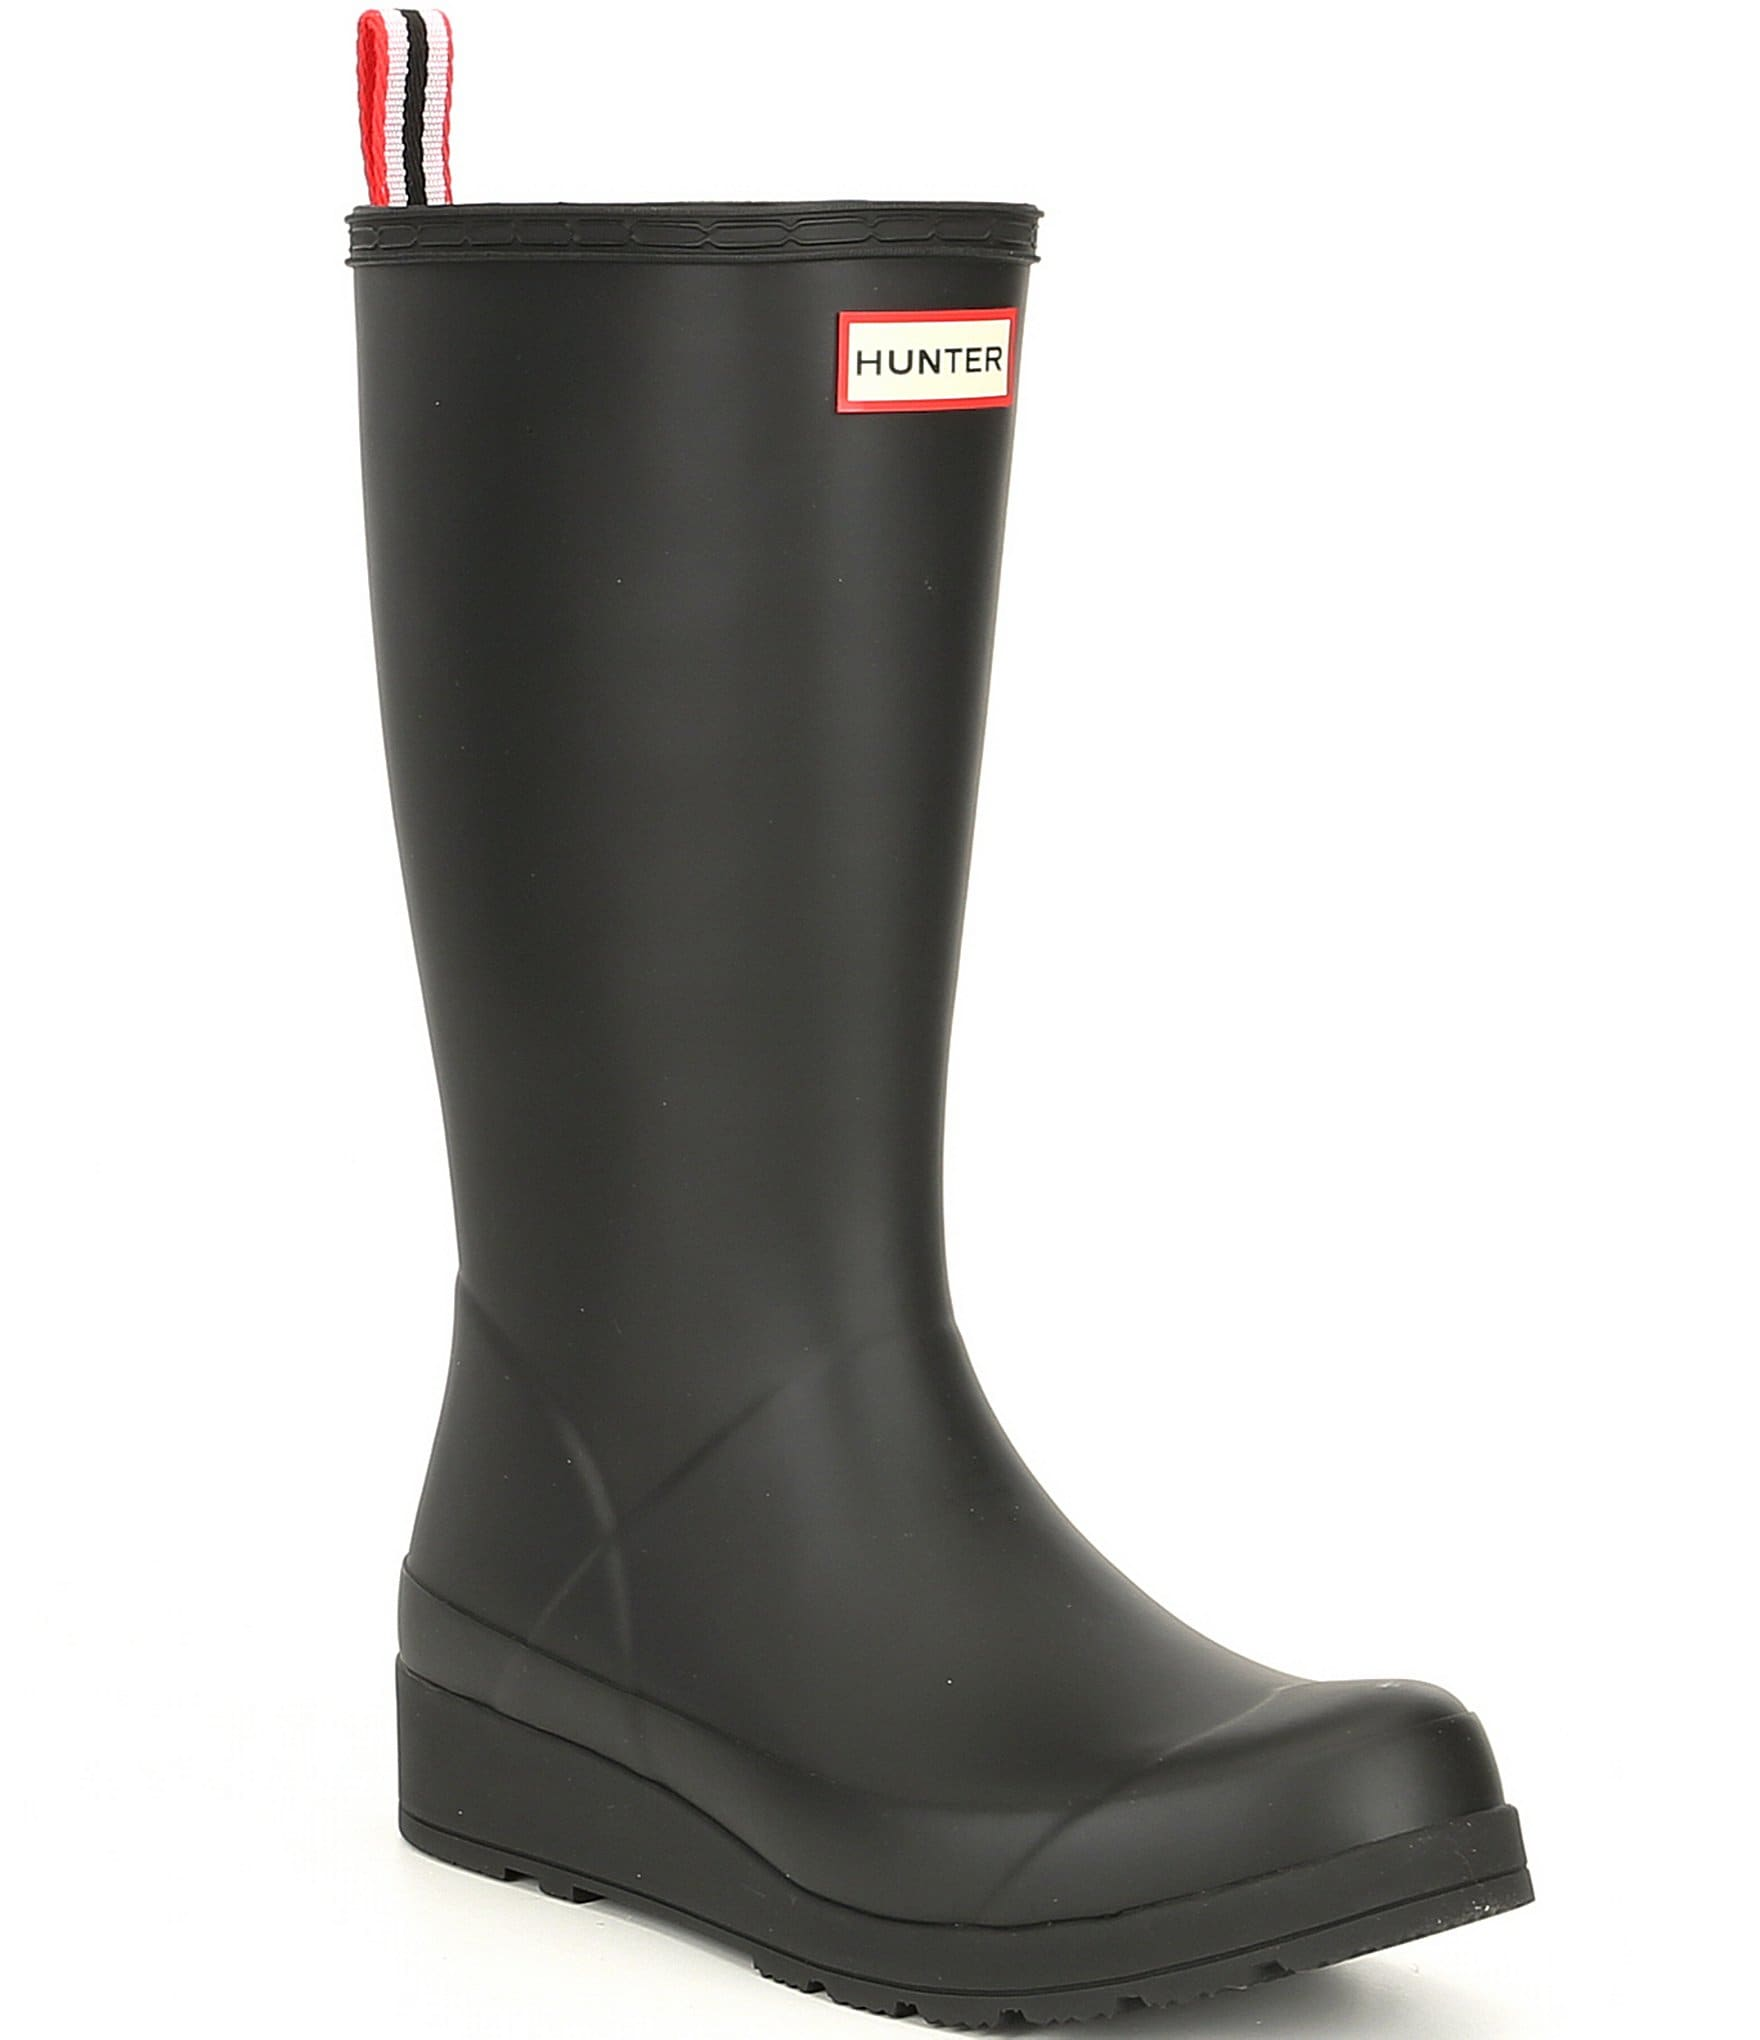 f4bac8f0888b Hunter Women s Rain Boots